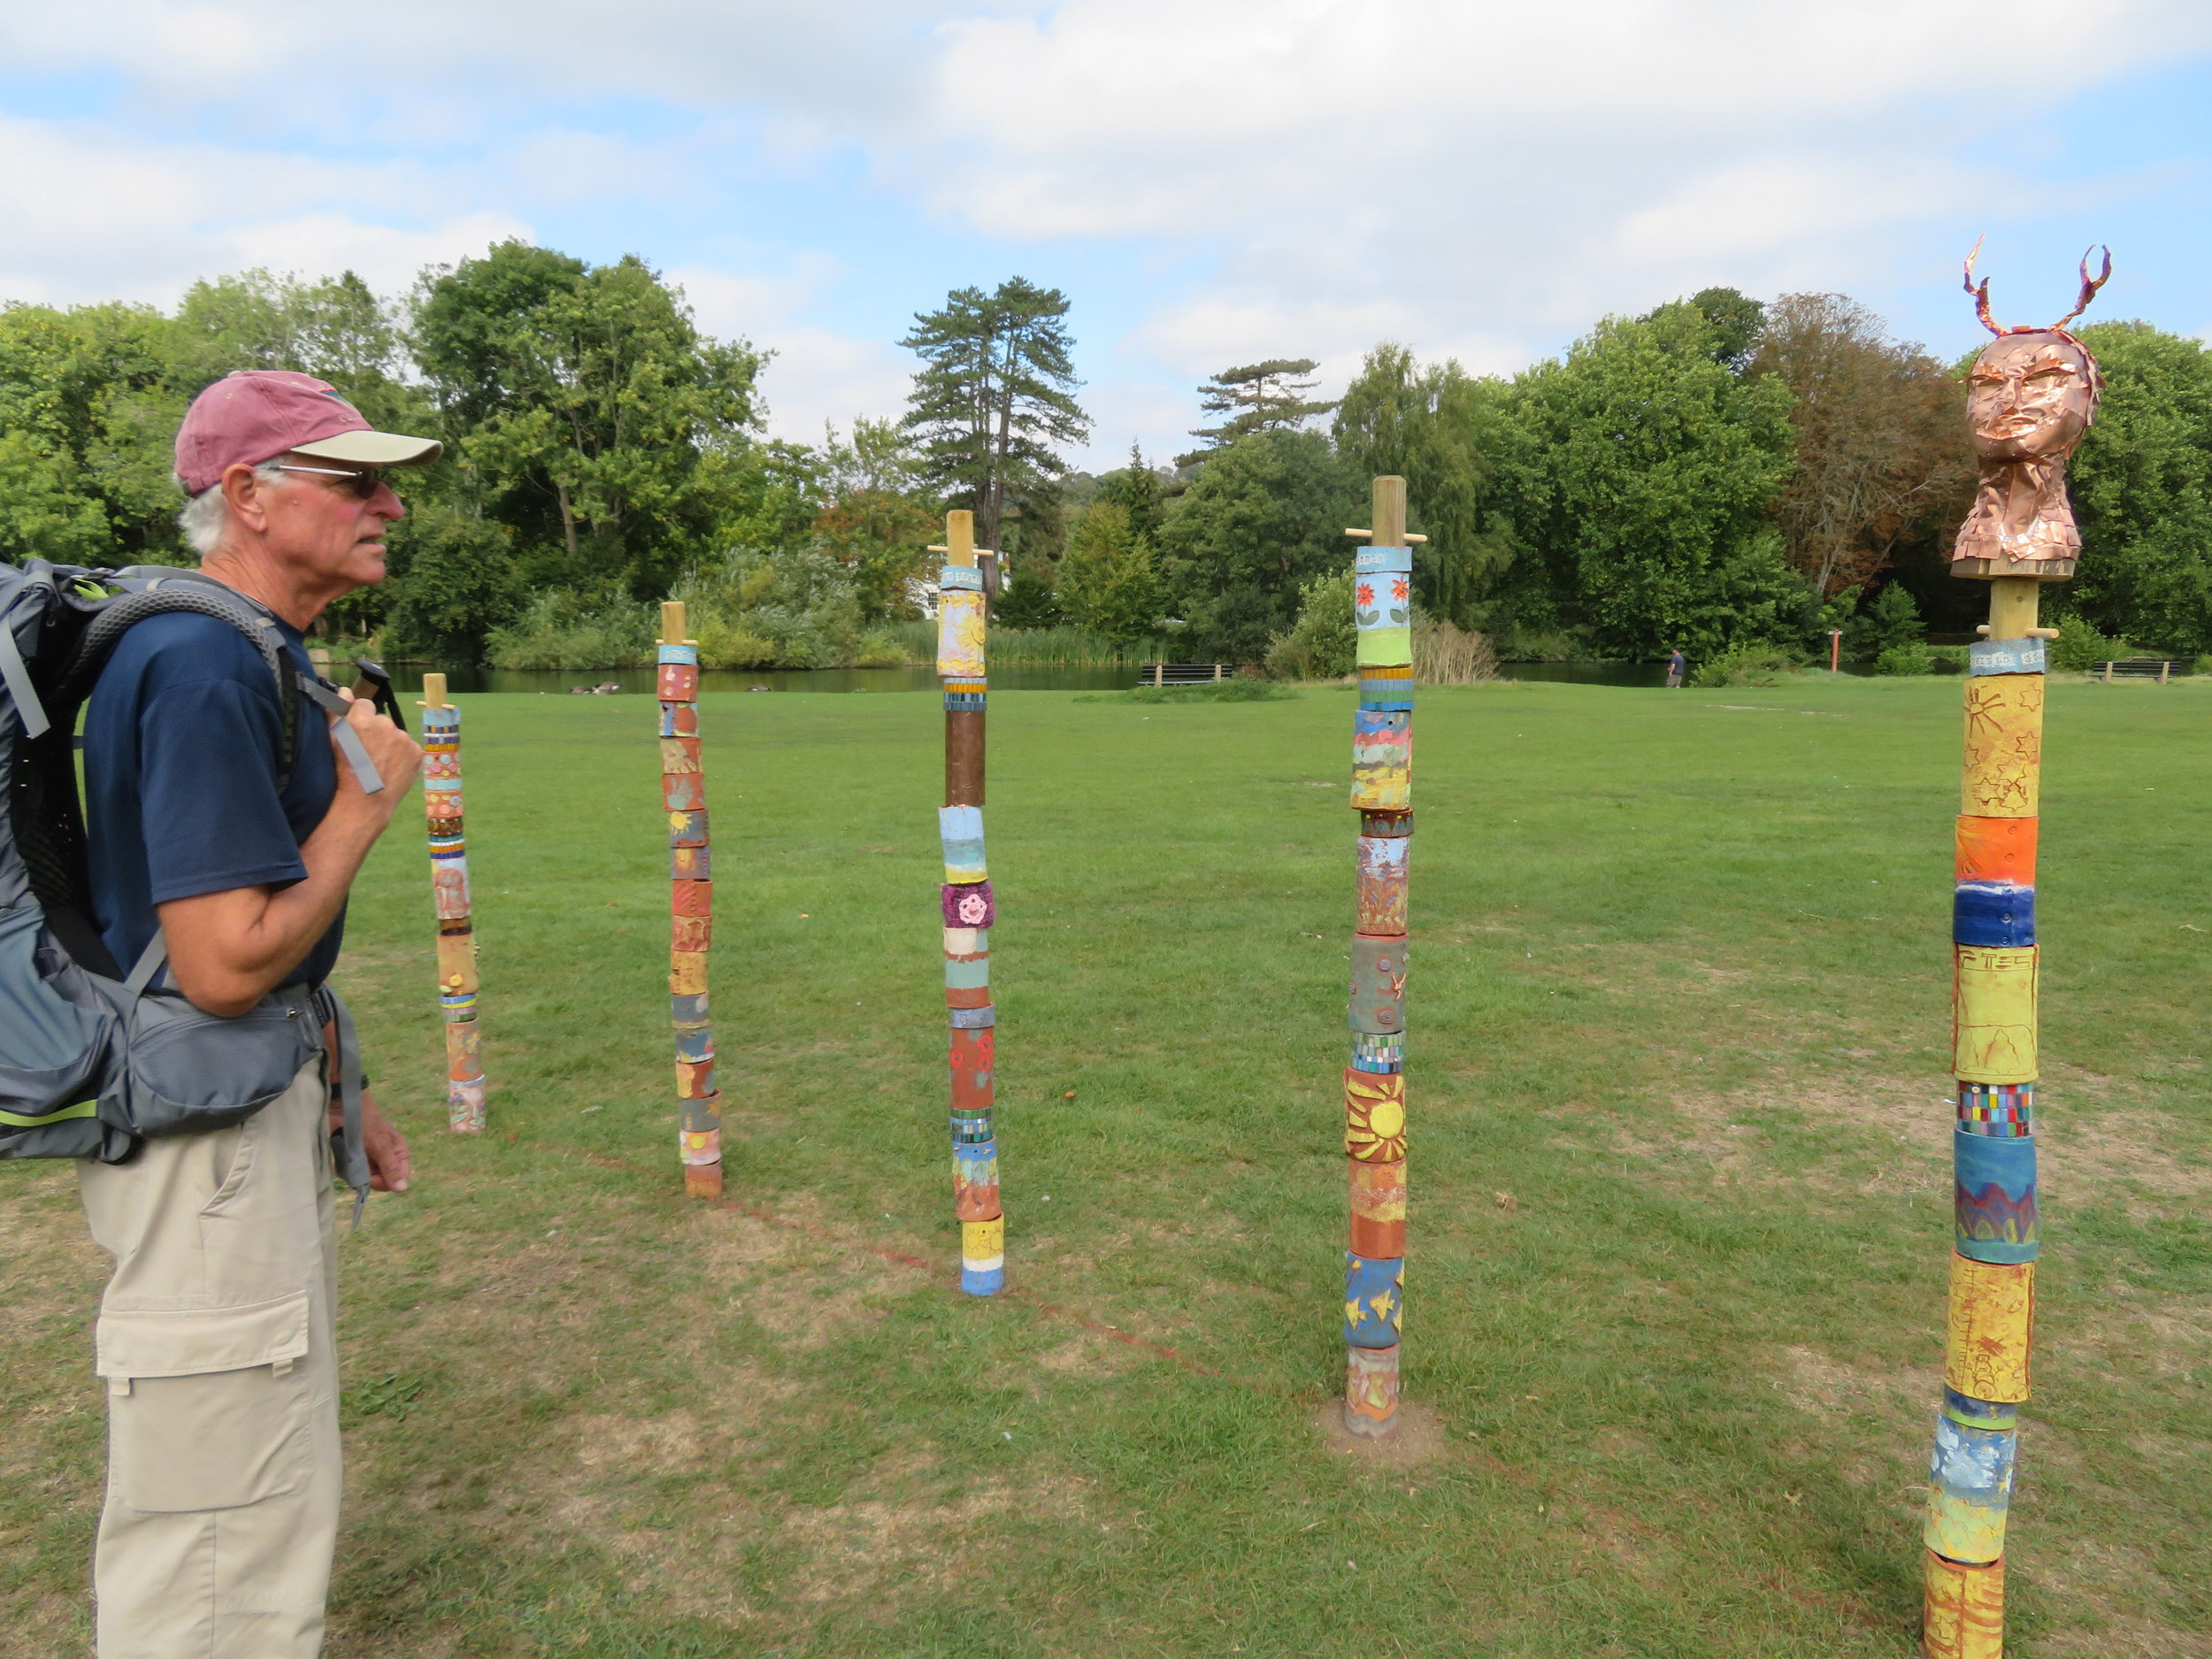 Totem poles at Pangborne Meadow